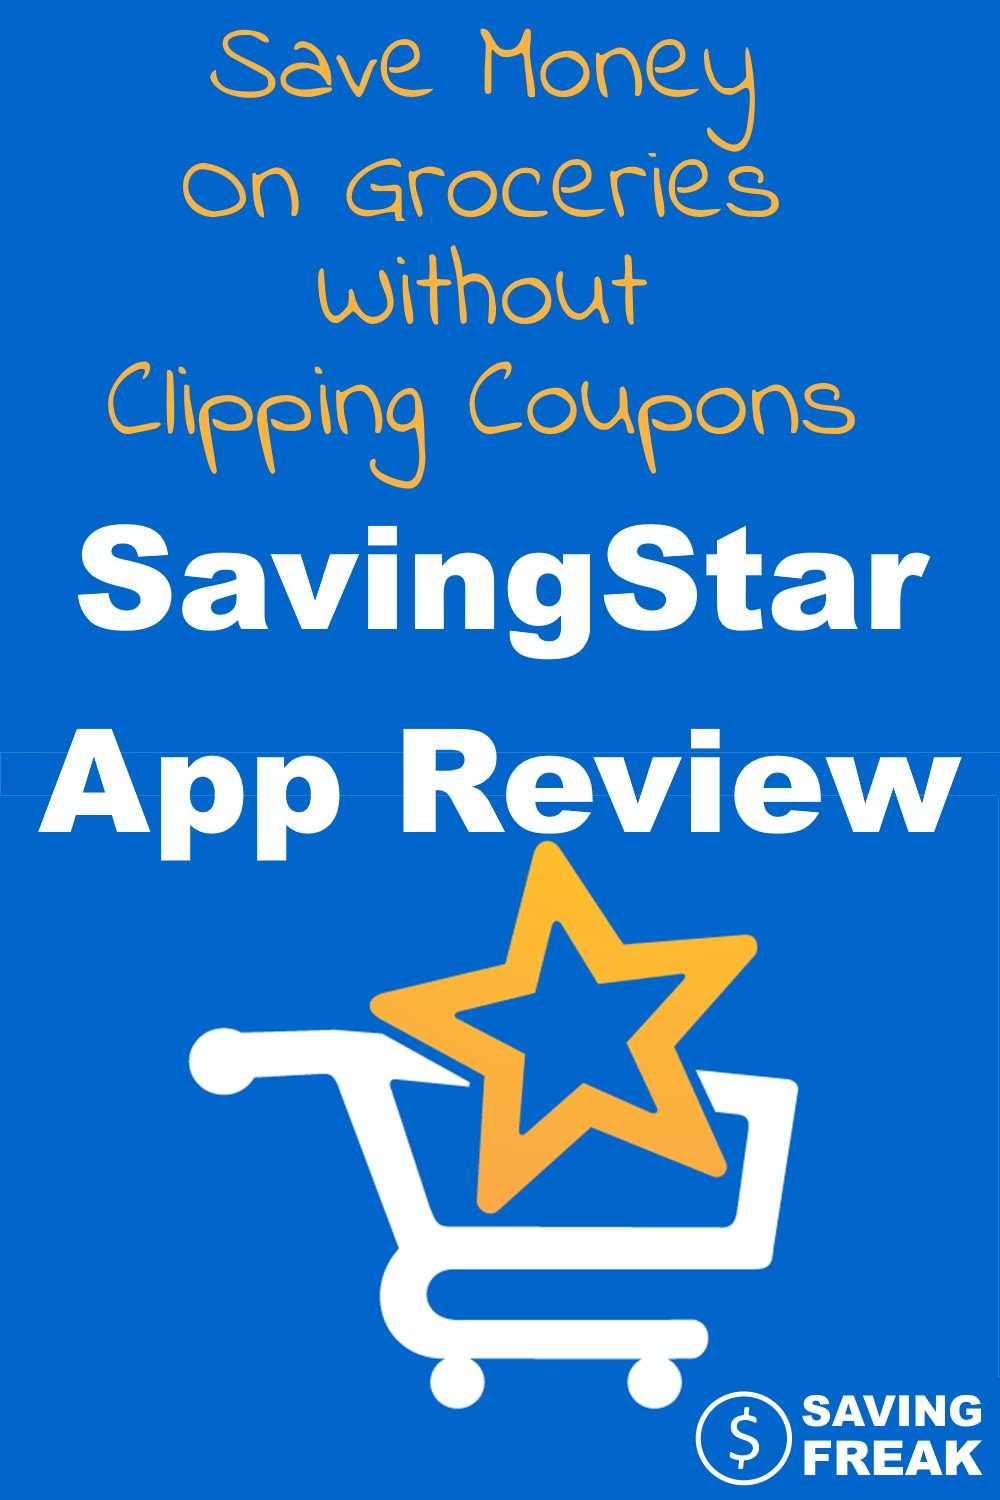 This SavingStar app review will help you understand how the app works and how to best use it to save money.